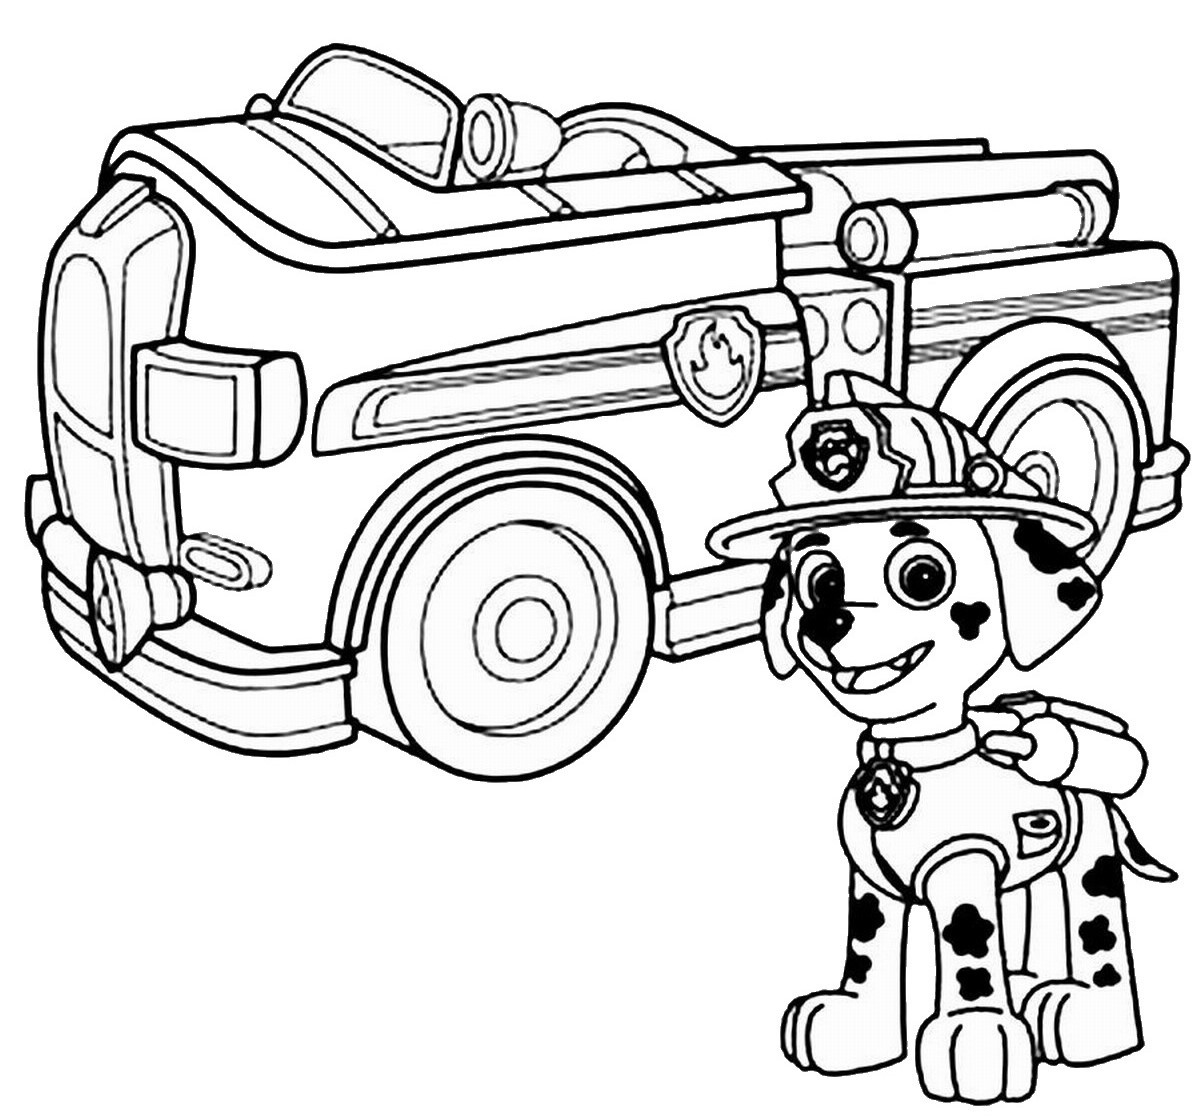 Nick jr summer coloring pages - Paw Patrol Truck Coloring Pages